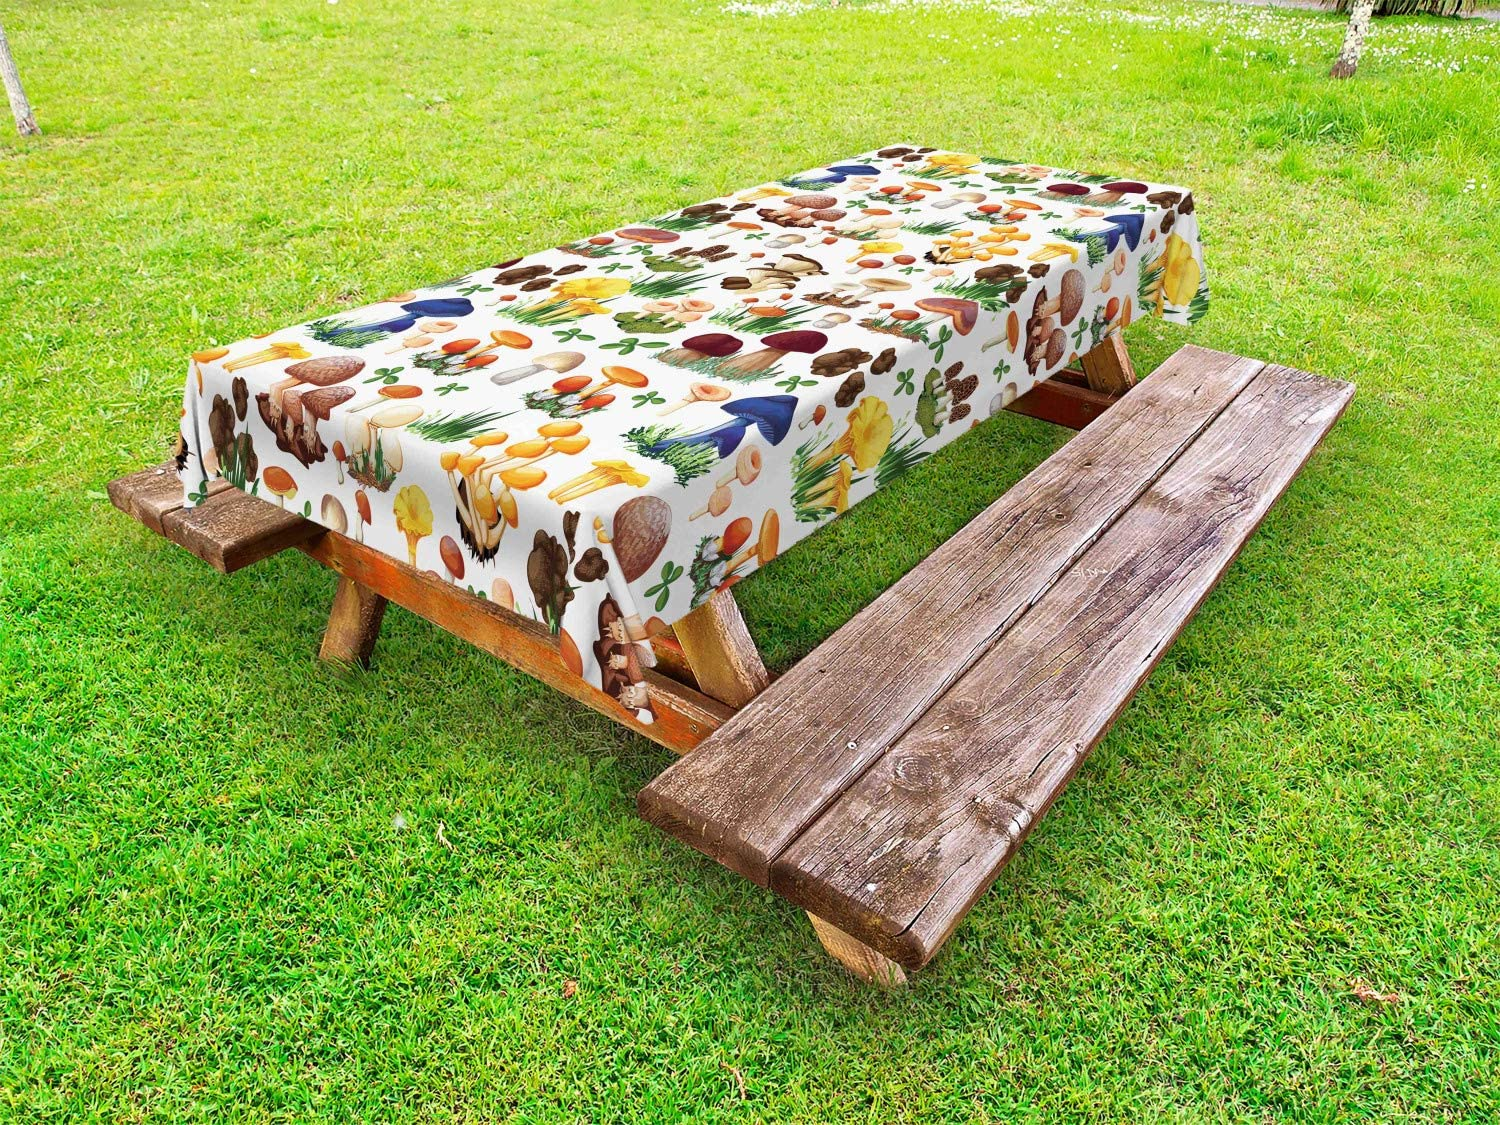 Ambesonne Mushroom Outdoor Tablecloth, Pattern with Types of Mushrooms Wild Species Organic Natural Food Garden Theme, Decorative Washable Picnic Table Cloth, 58